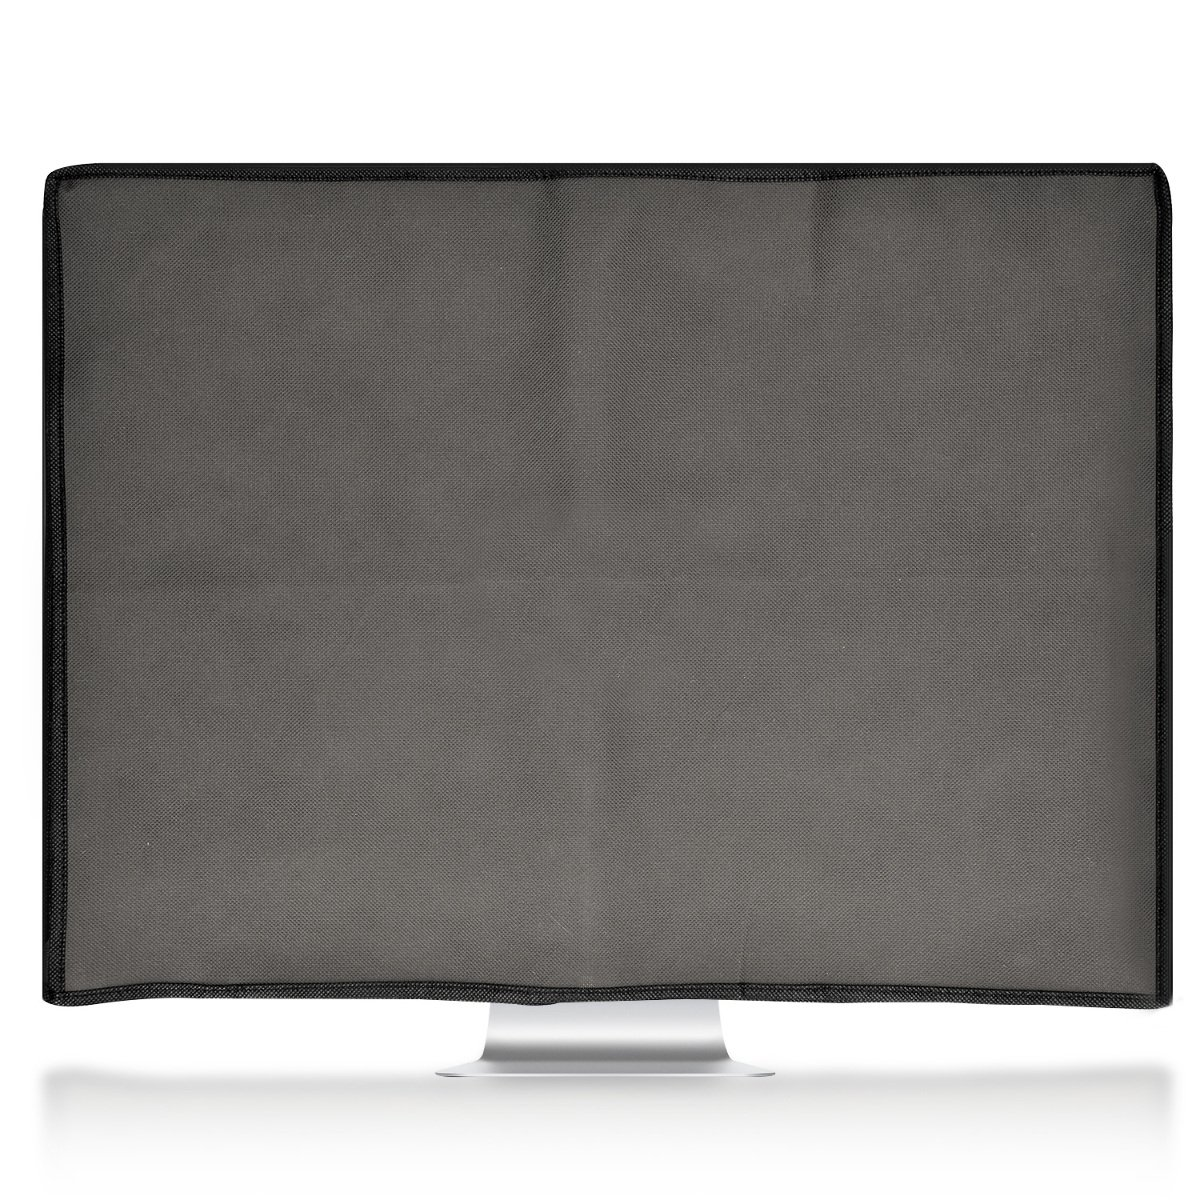 Dark Grey kwmobile Monitor Cover for 20-22 Monitor Dust Cover PC Monitor Case Screen Display Protector